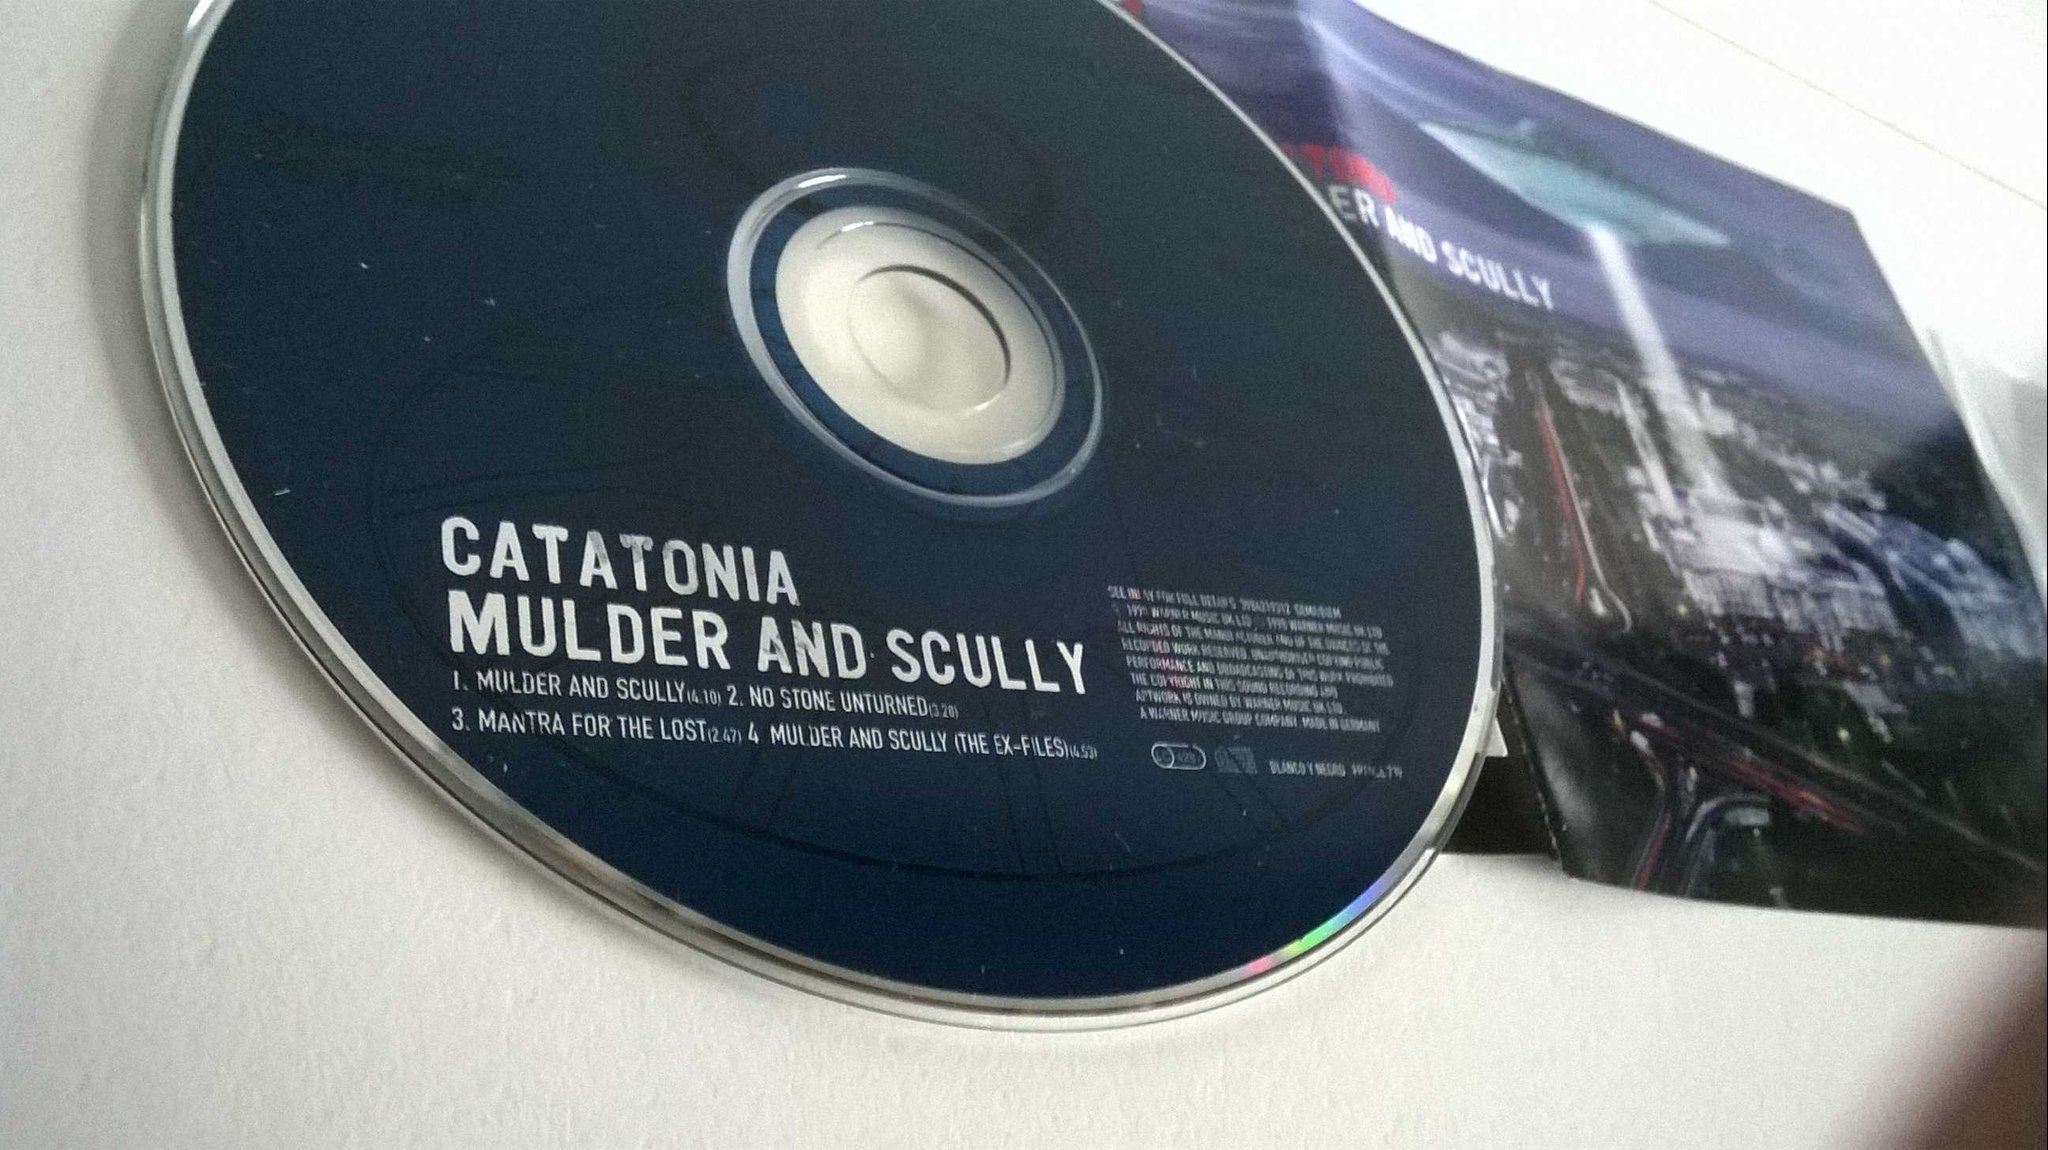 Catatonia - Mulder and scully, single CD, promo stämplad